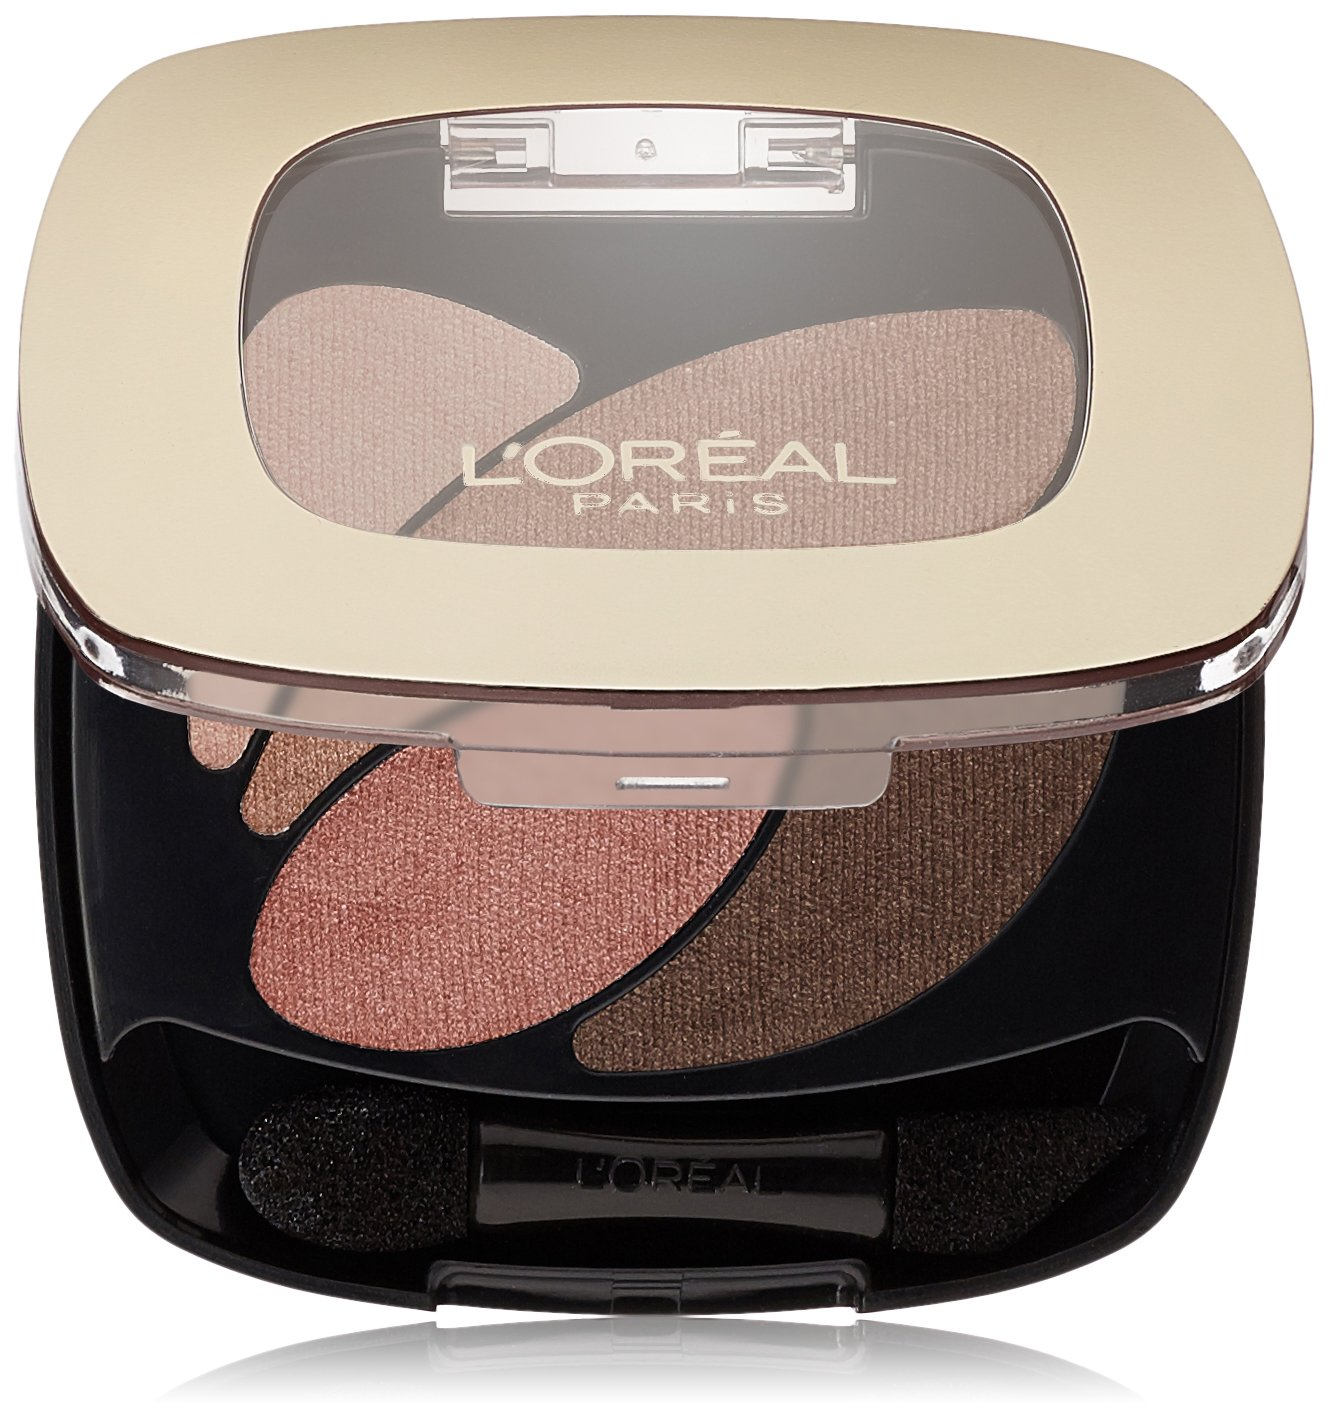 L'Oreal Paris Colour Riche Dual Effects Eyeshadow, Rose Nude [300] 0.12 oz